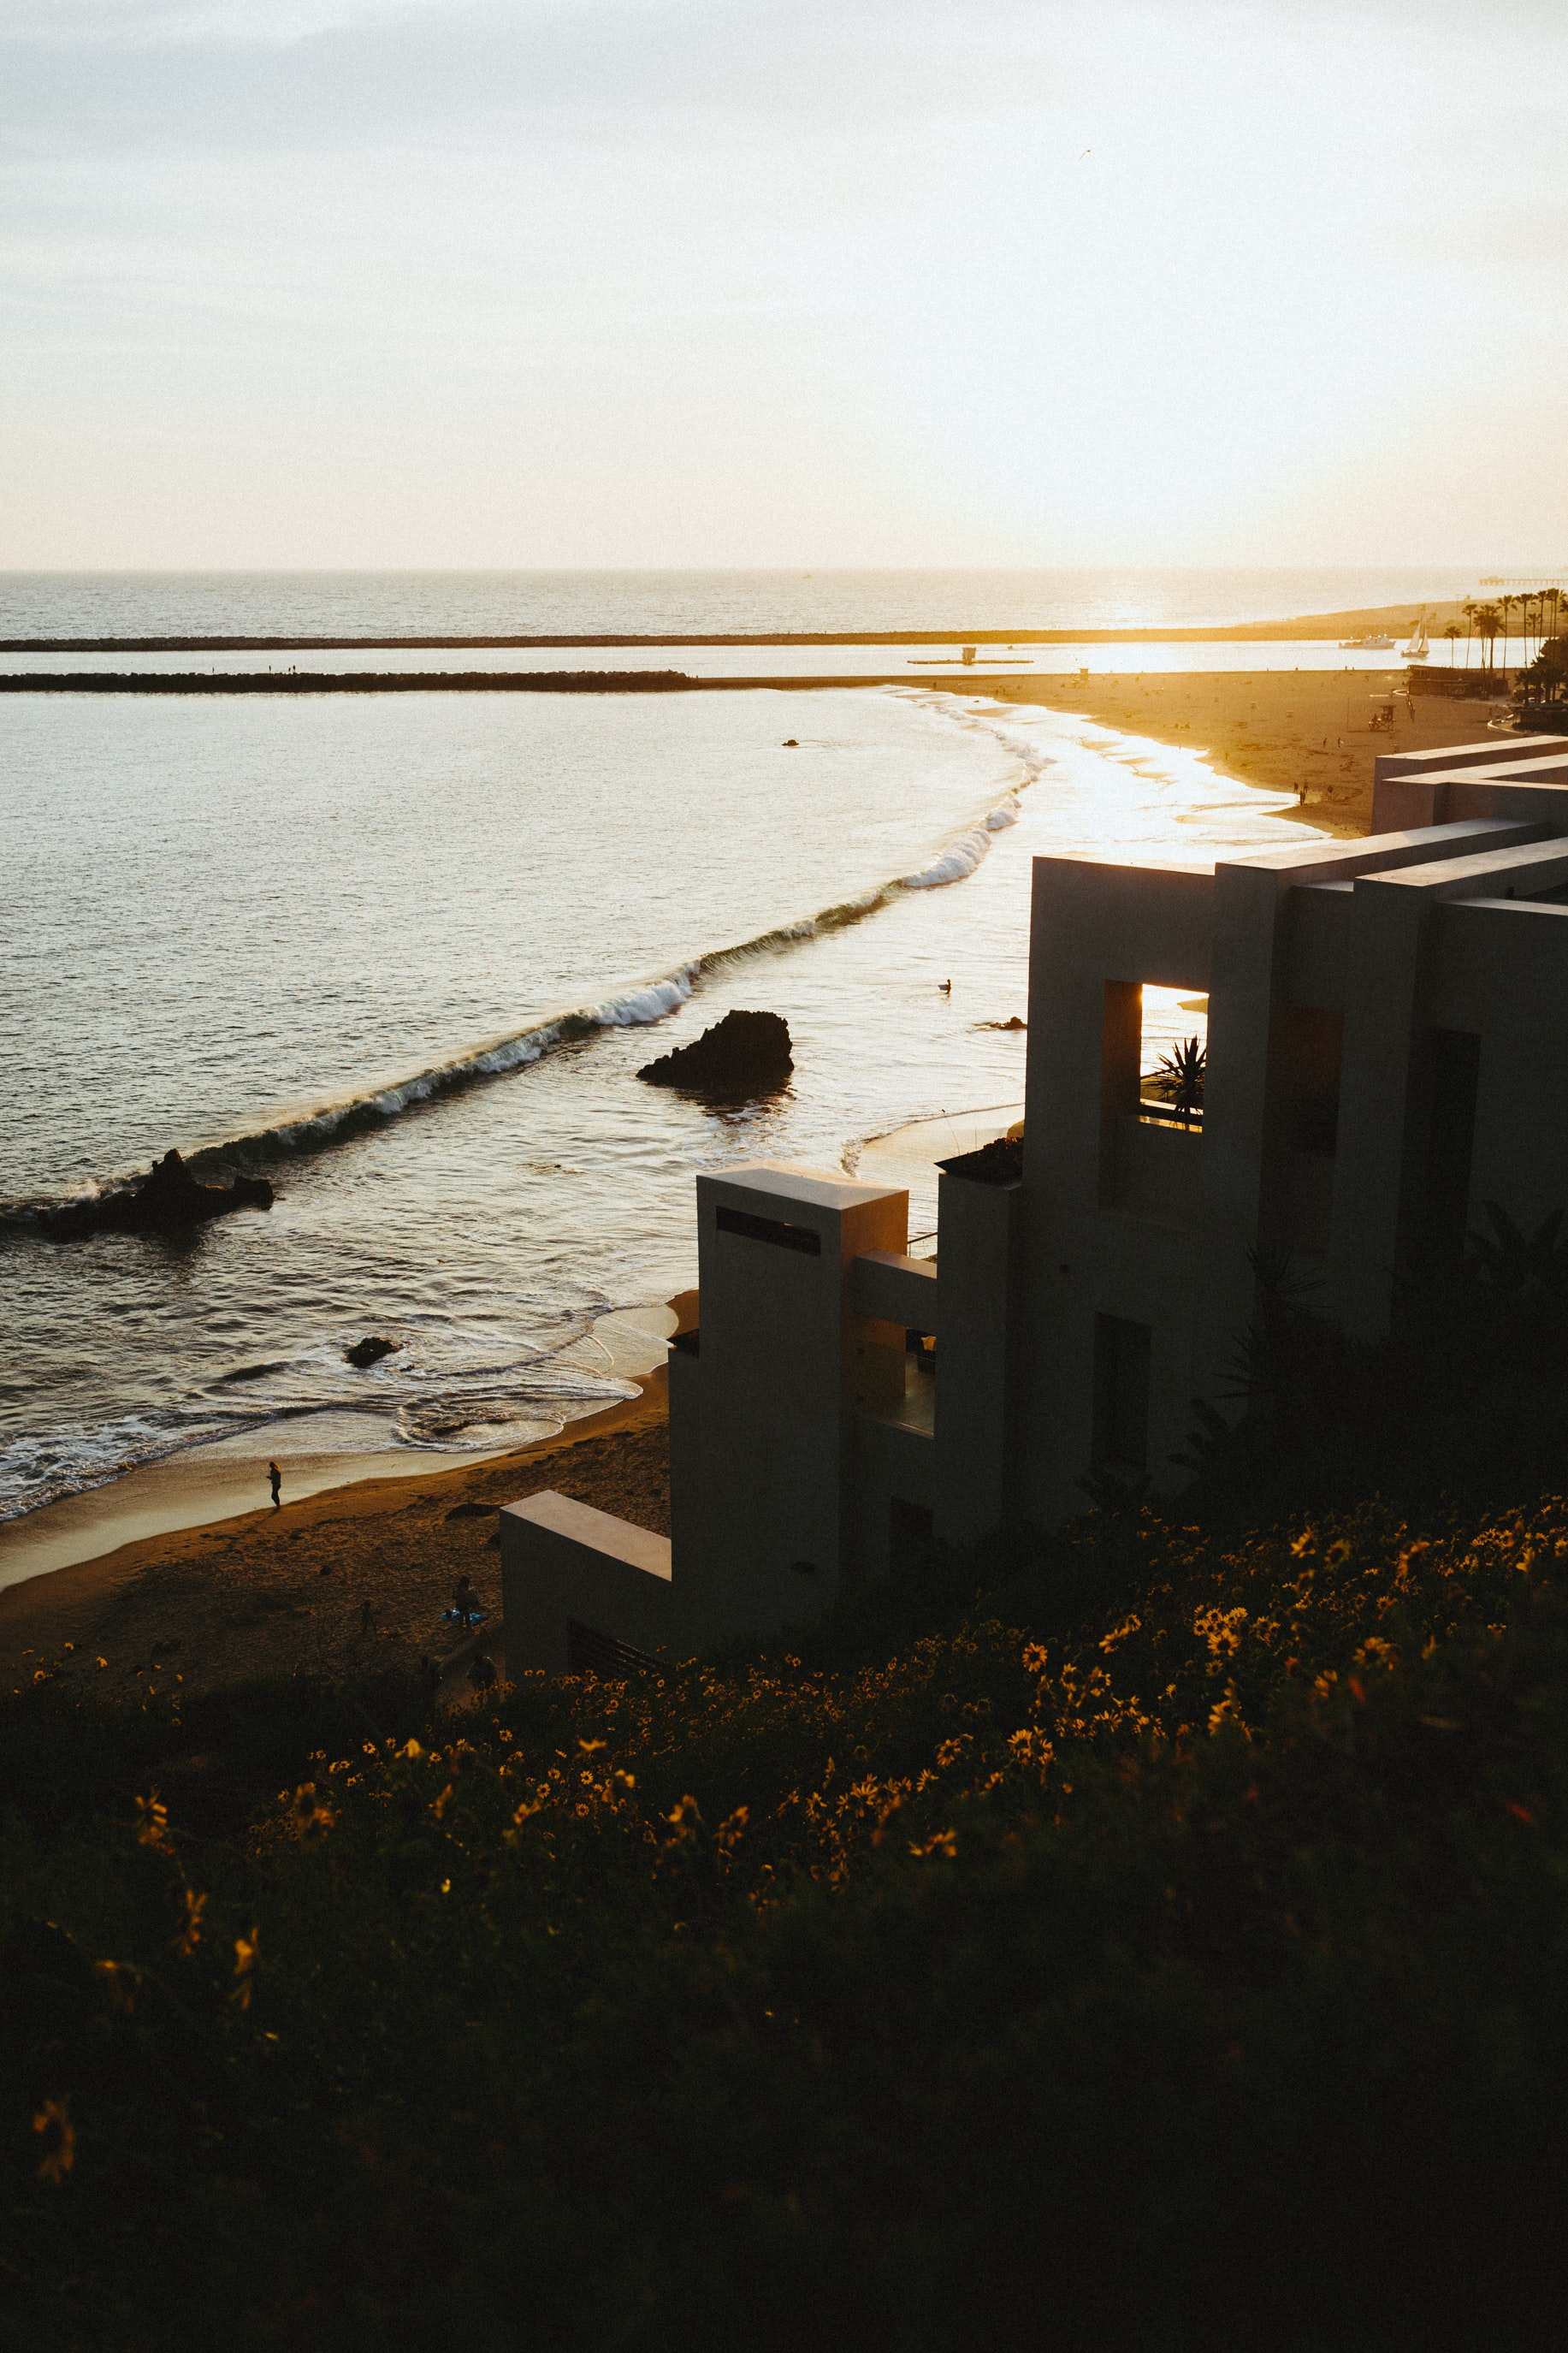 House on the sandy beach coastline in Corona Del Mar at sunset